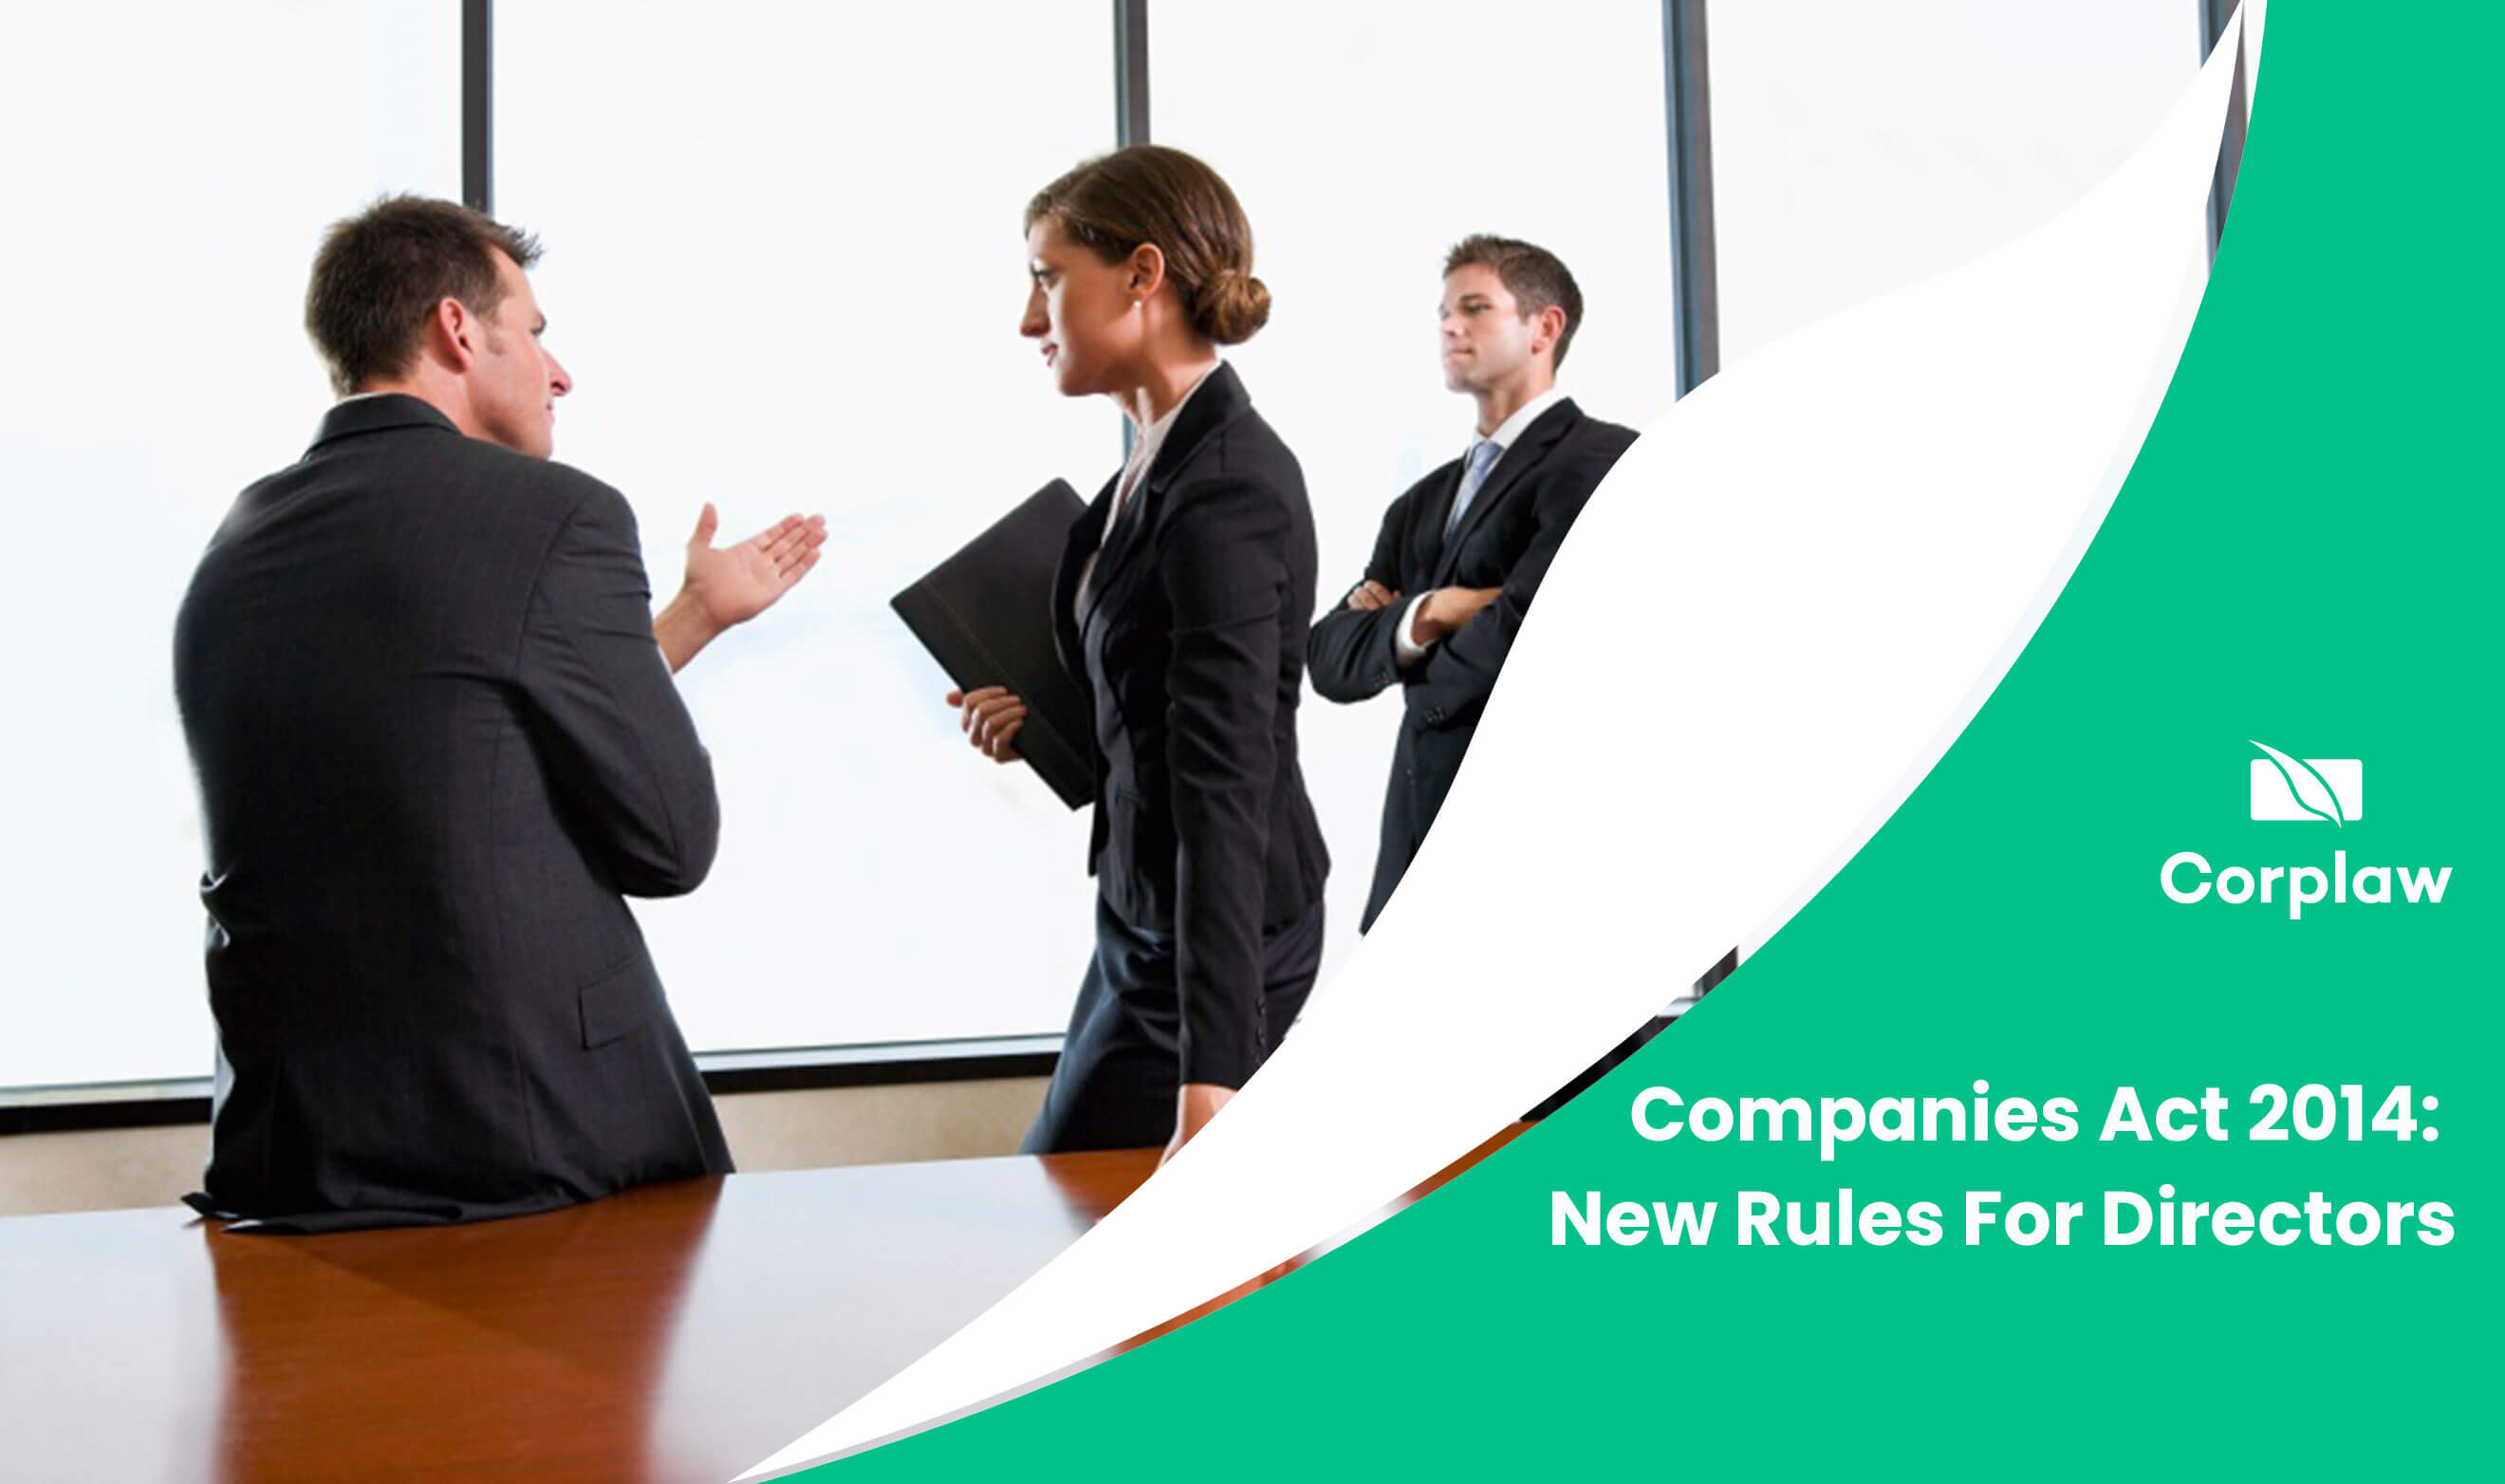 Corplaw-Blog-Companies-Act-2014--New-Rules-For-Directors